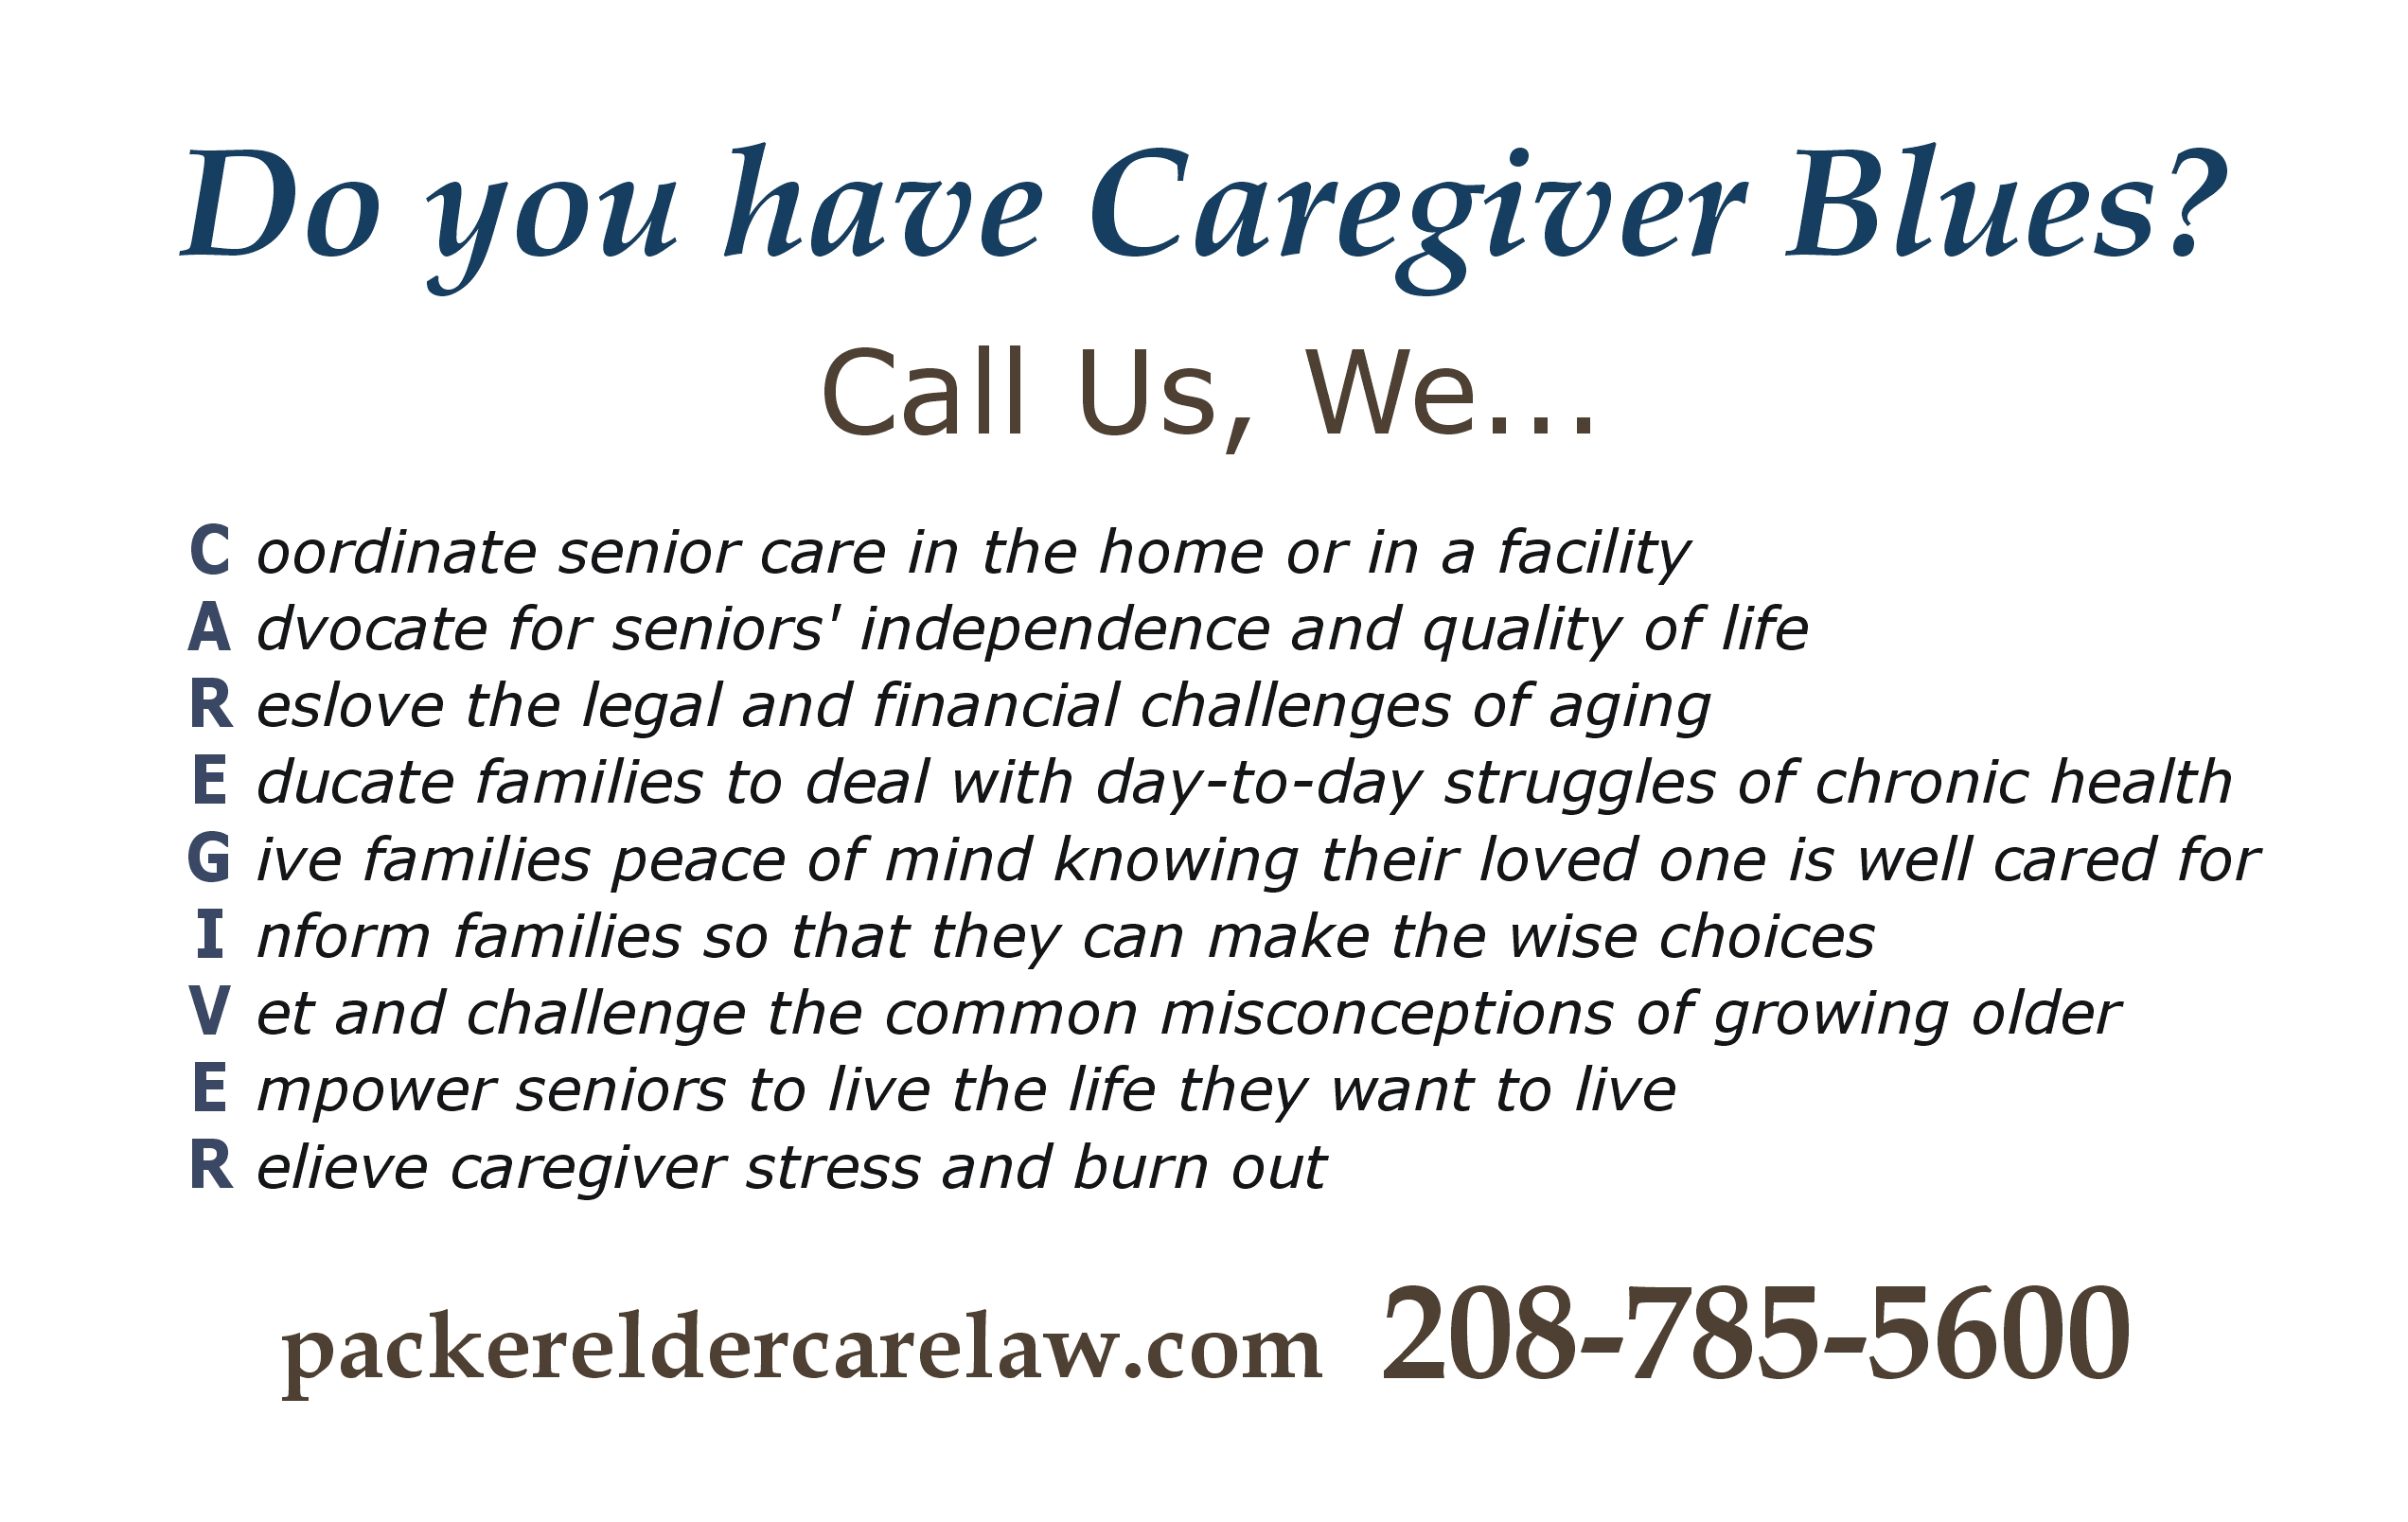 Care Giver Blues